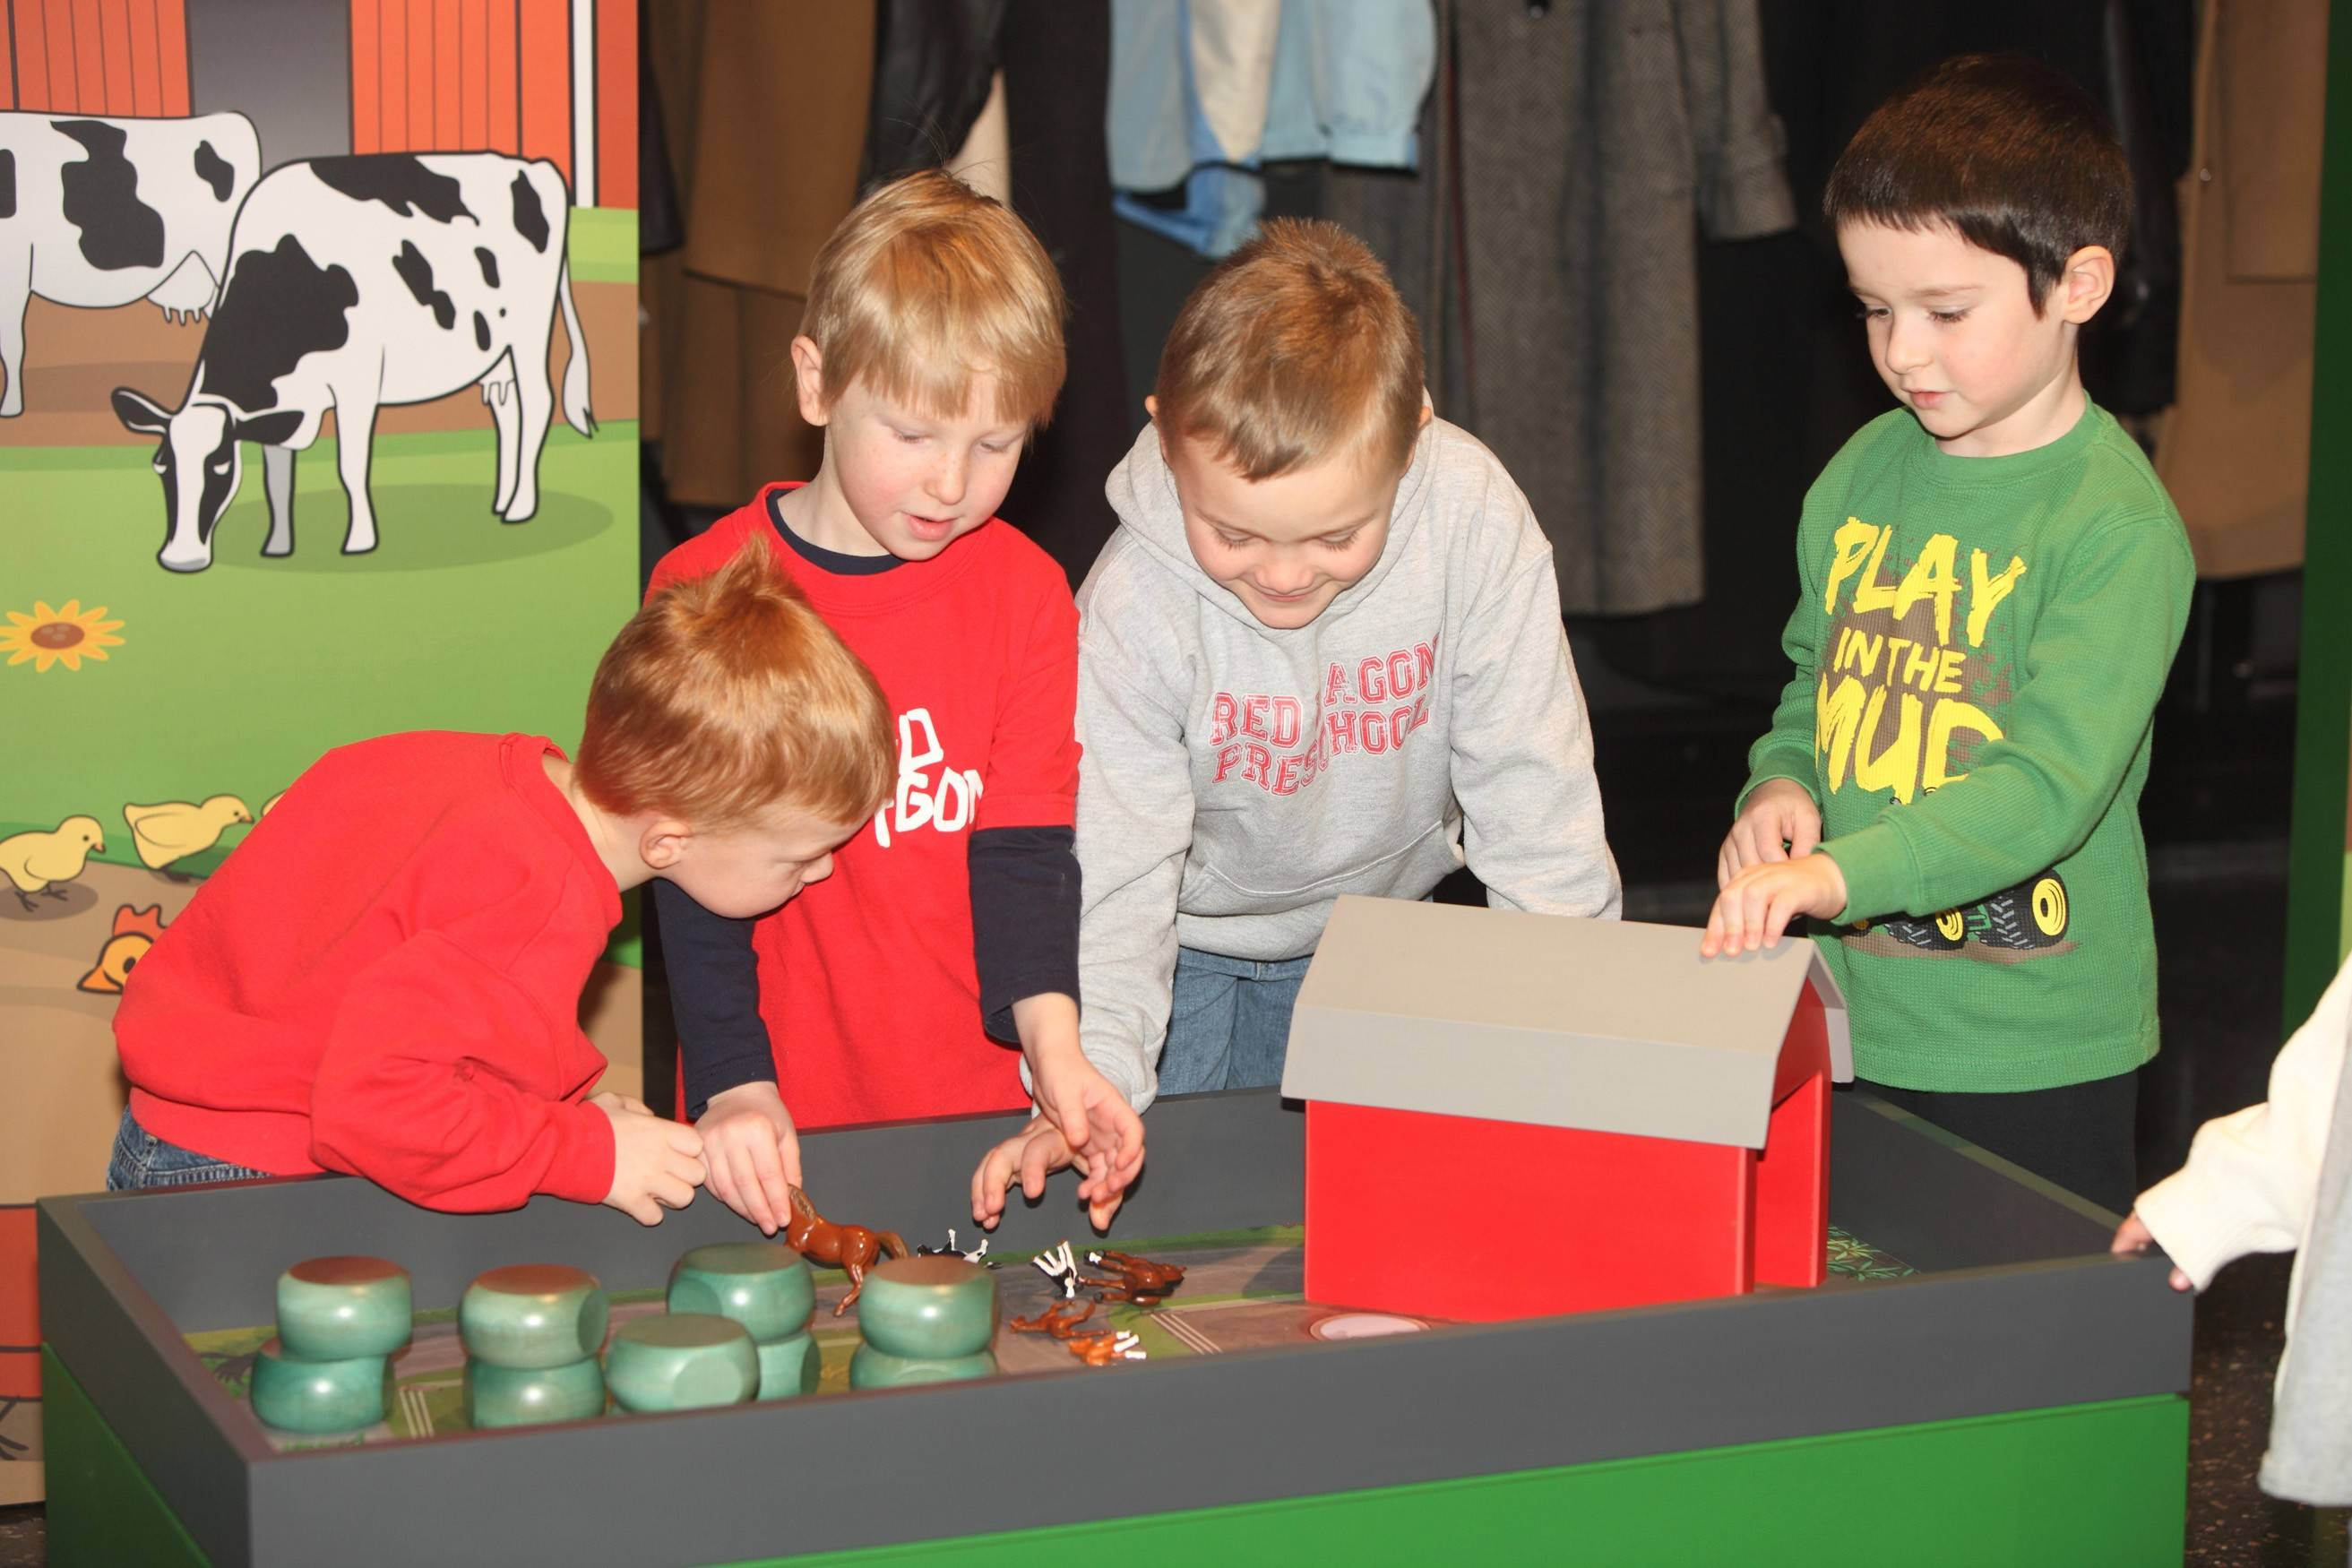 The John Deere Pavilion in Moline enchants kids, as well as adults, with its machine-driving simulators and a Discovery Zone for little ones to learn where food comes from and how it gets transported.